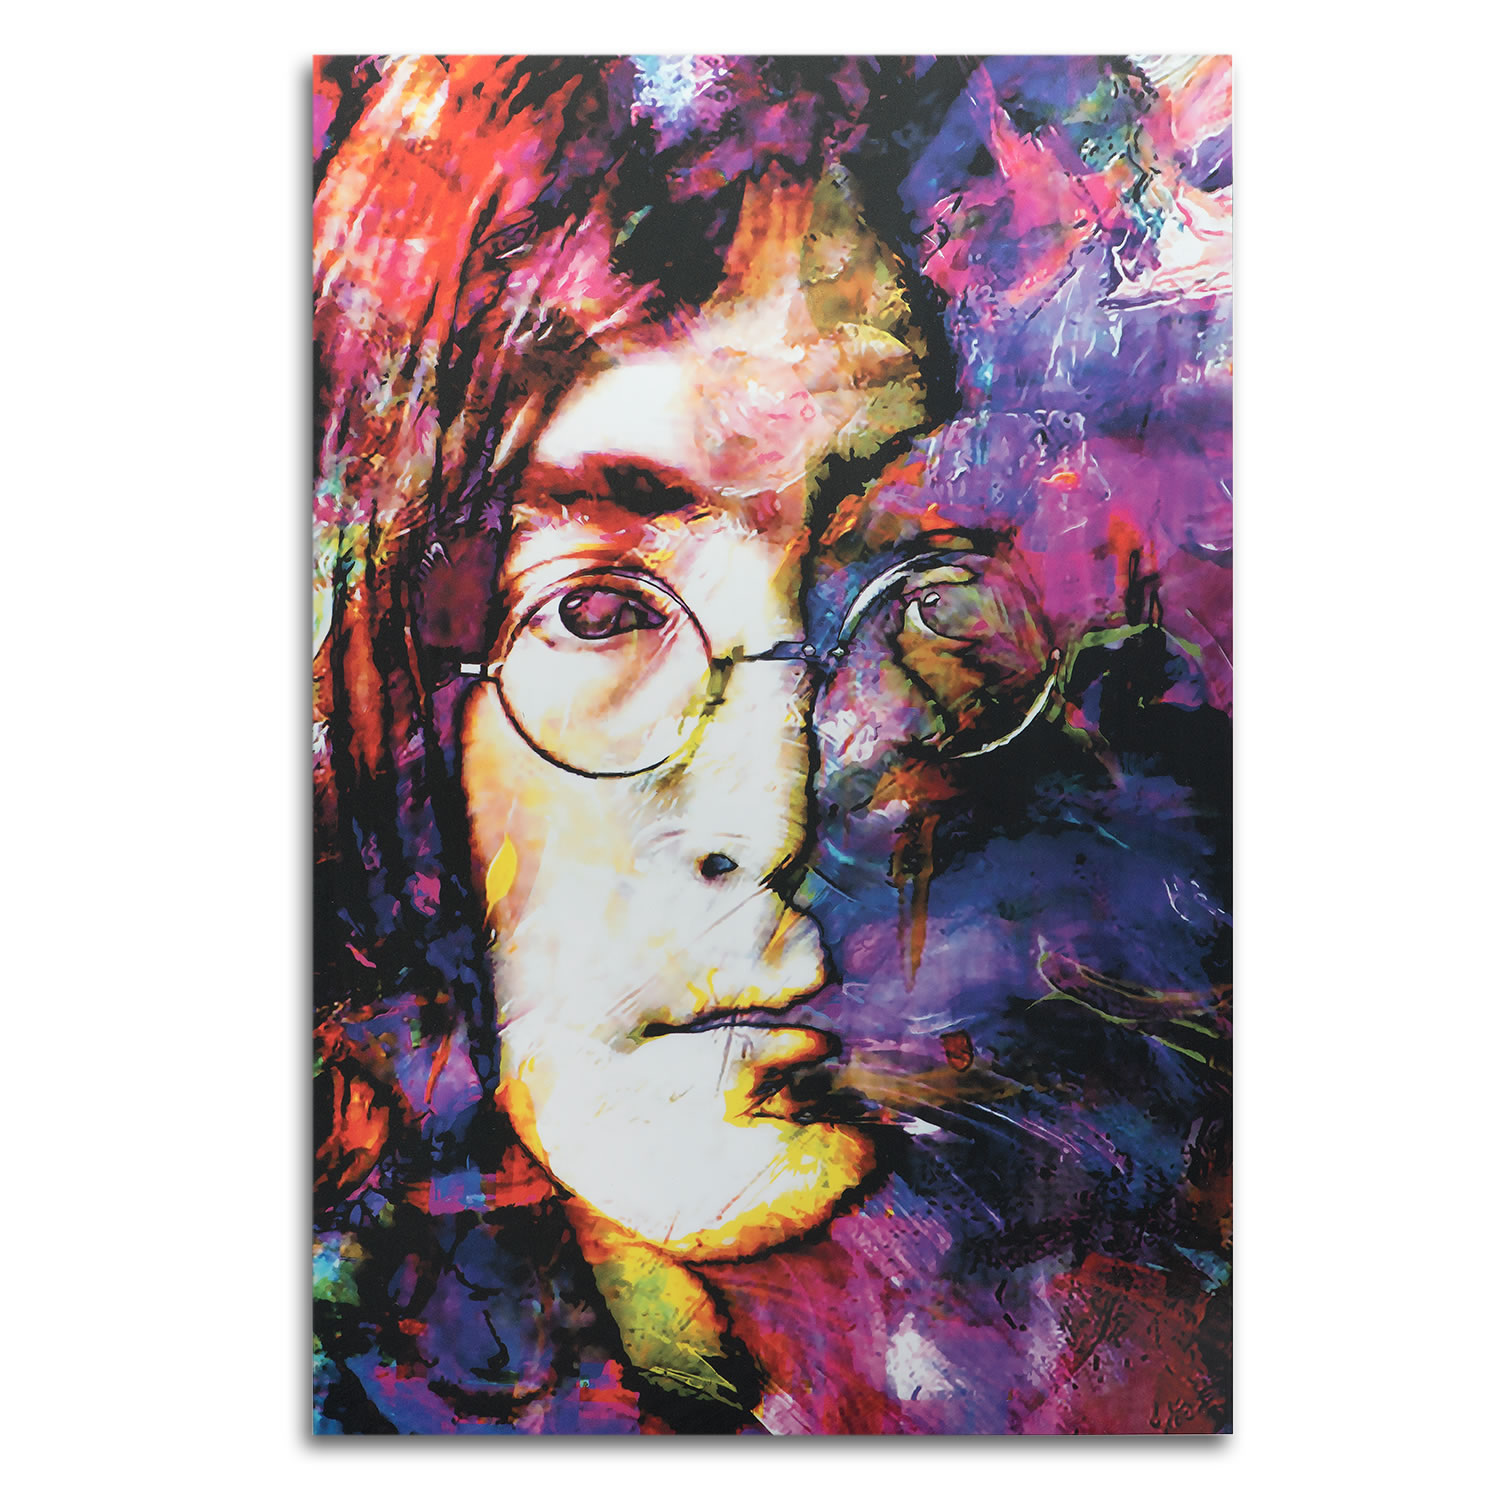 John Lennon Study 2 | Pop Art Beatles Painting by Mark Lewis, Signed & Numbered Limited Edition